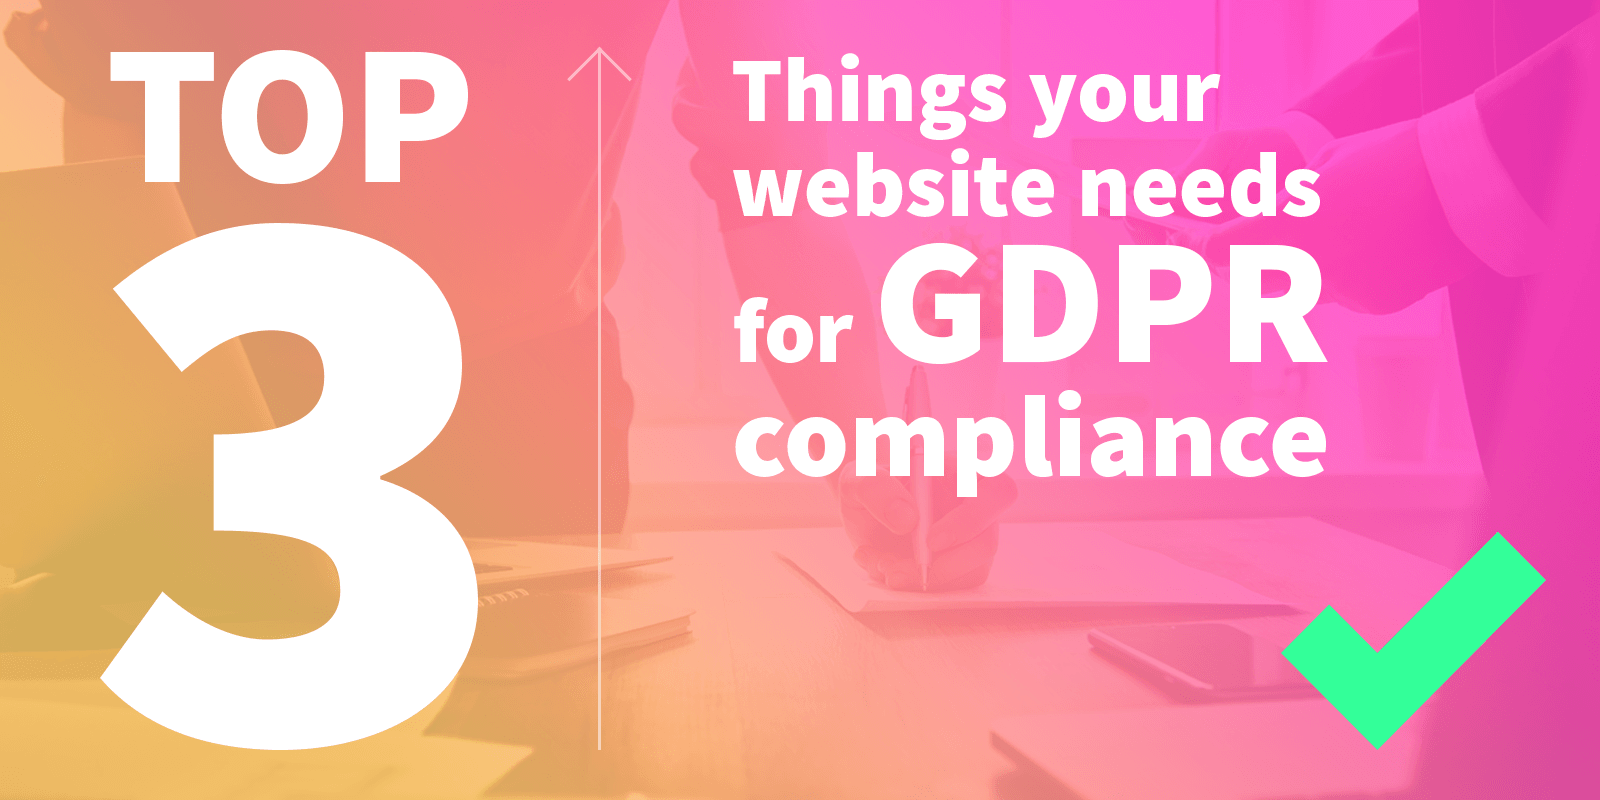 3 things your website needs for GDPR compliance